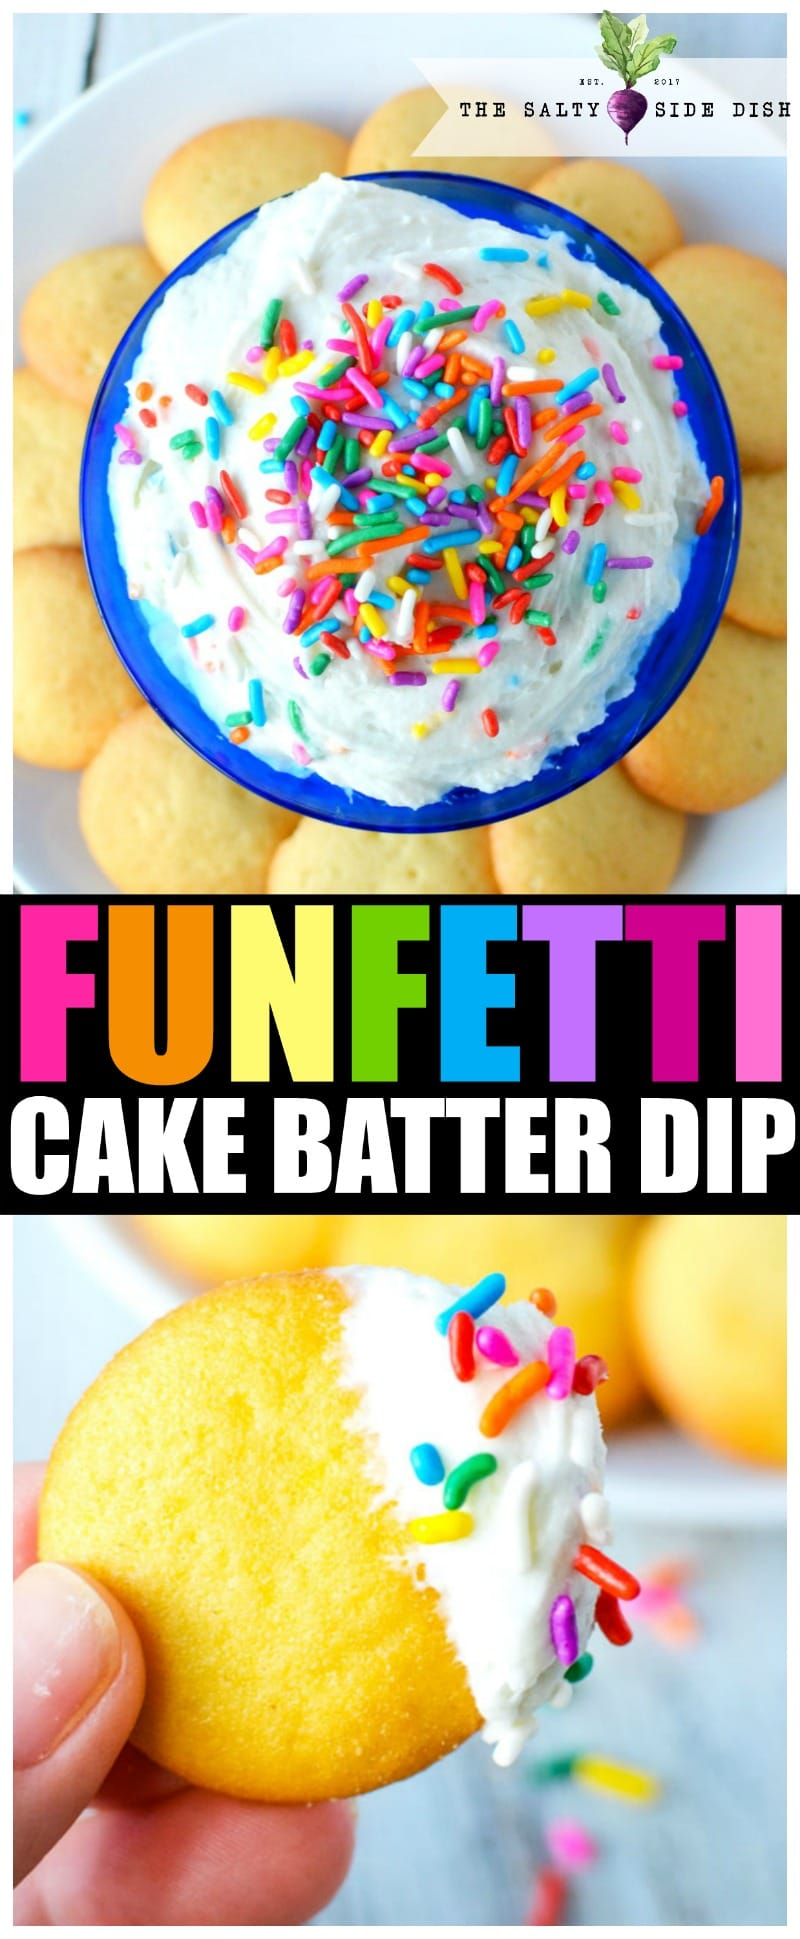 Funfetti Dip Recipe | Funfetti Cake Dip is a super fun, super delicious cake batter dessert dip waiting to be dunked with graham crackers or Nilla Wafers. Layers on the sprinkles and let's get Dipping! #dip #dessertdip #dessert #appetizer #party #parties #dips